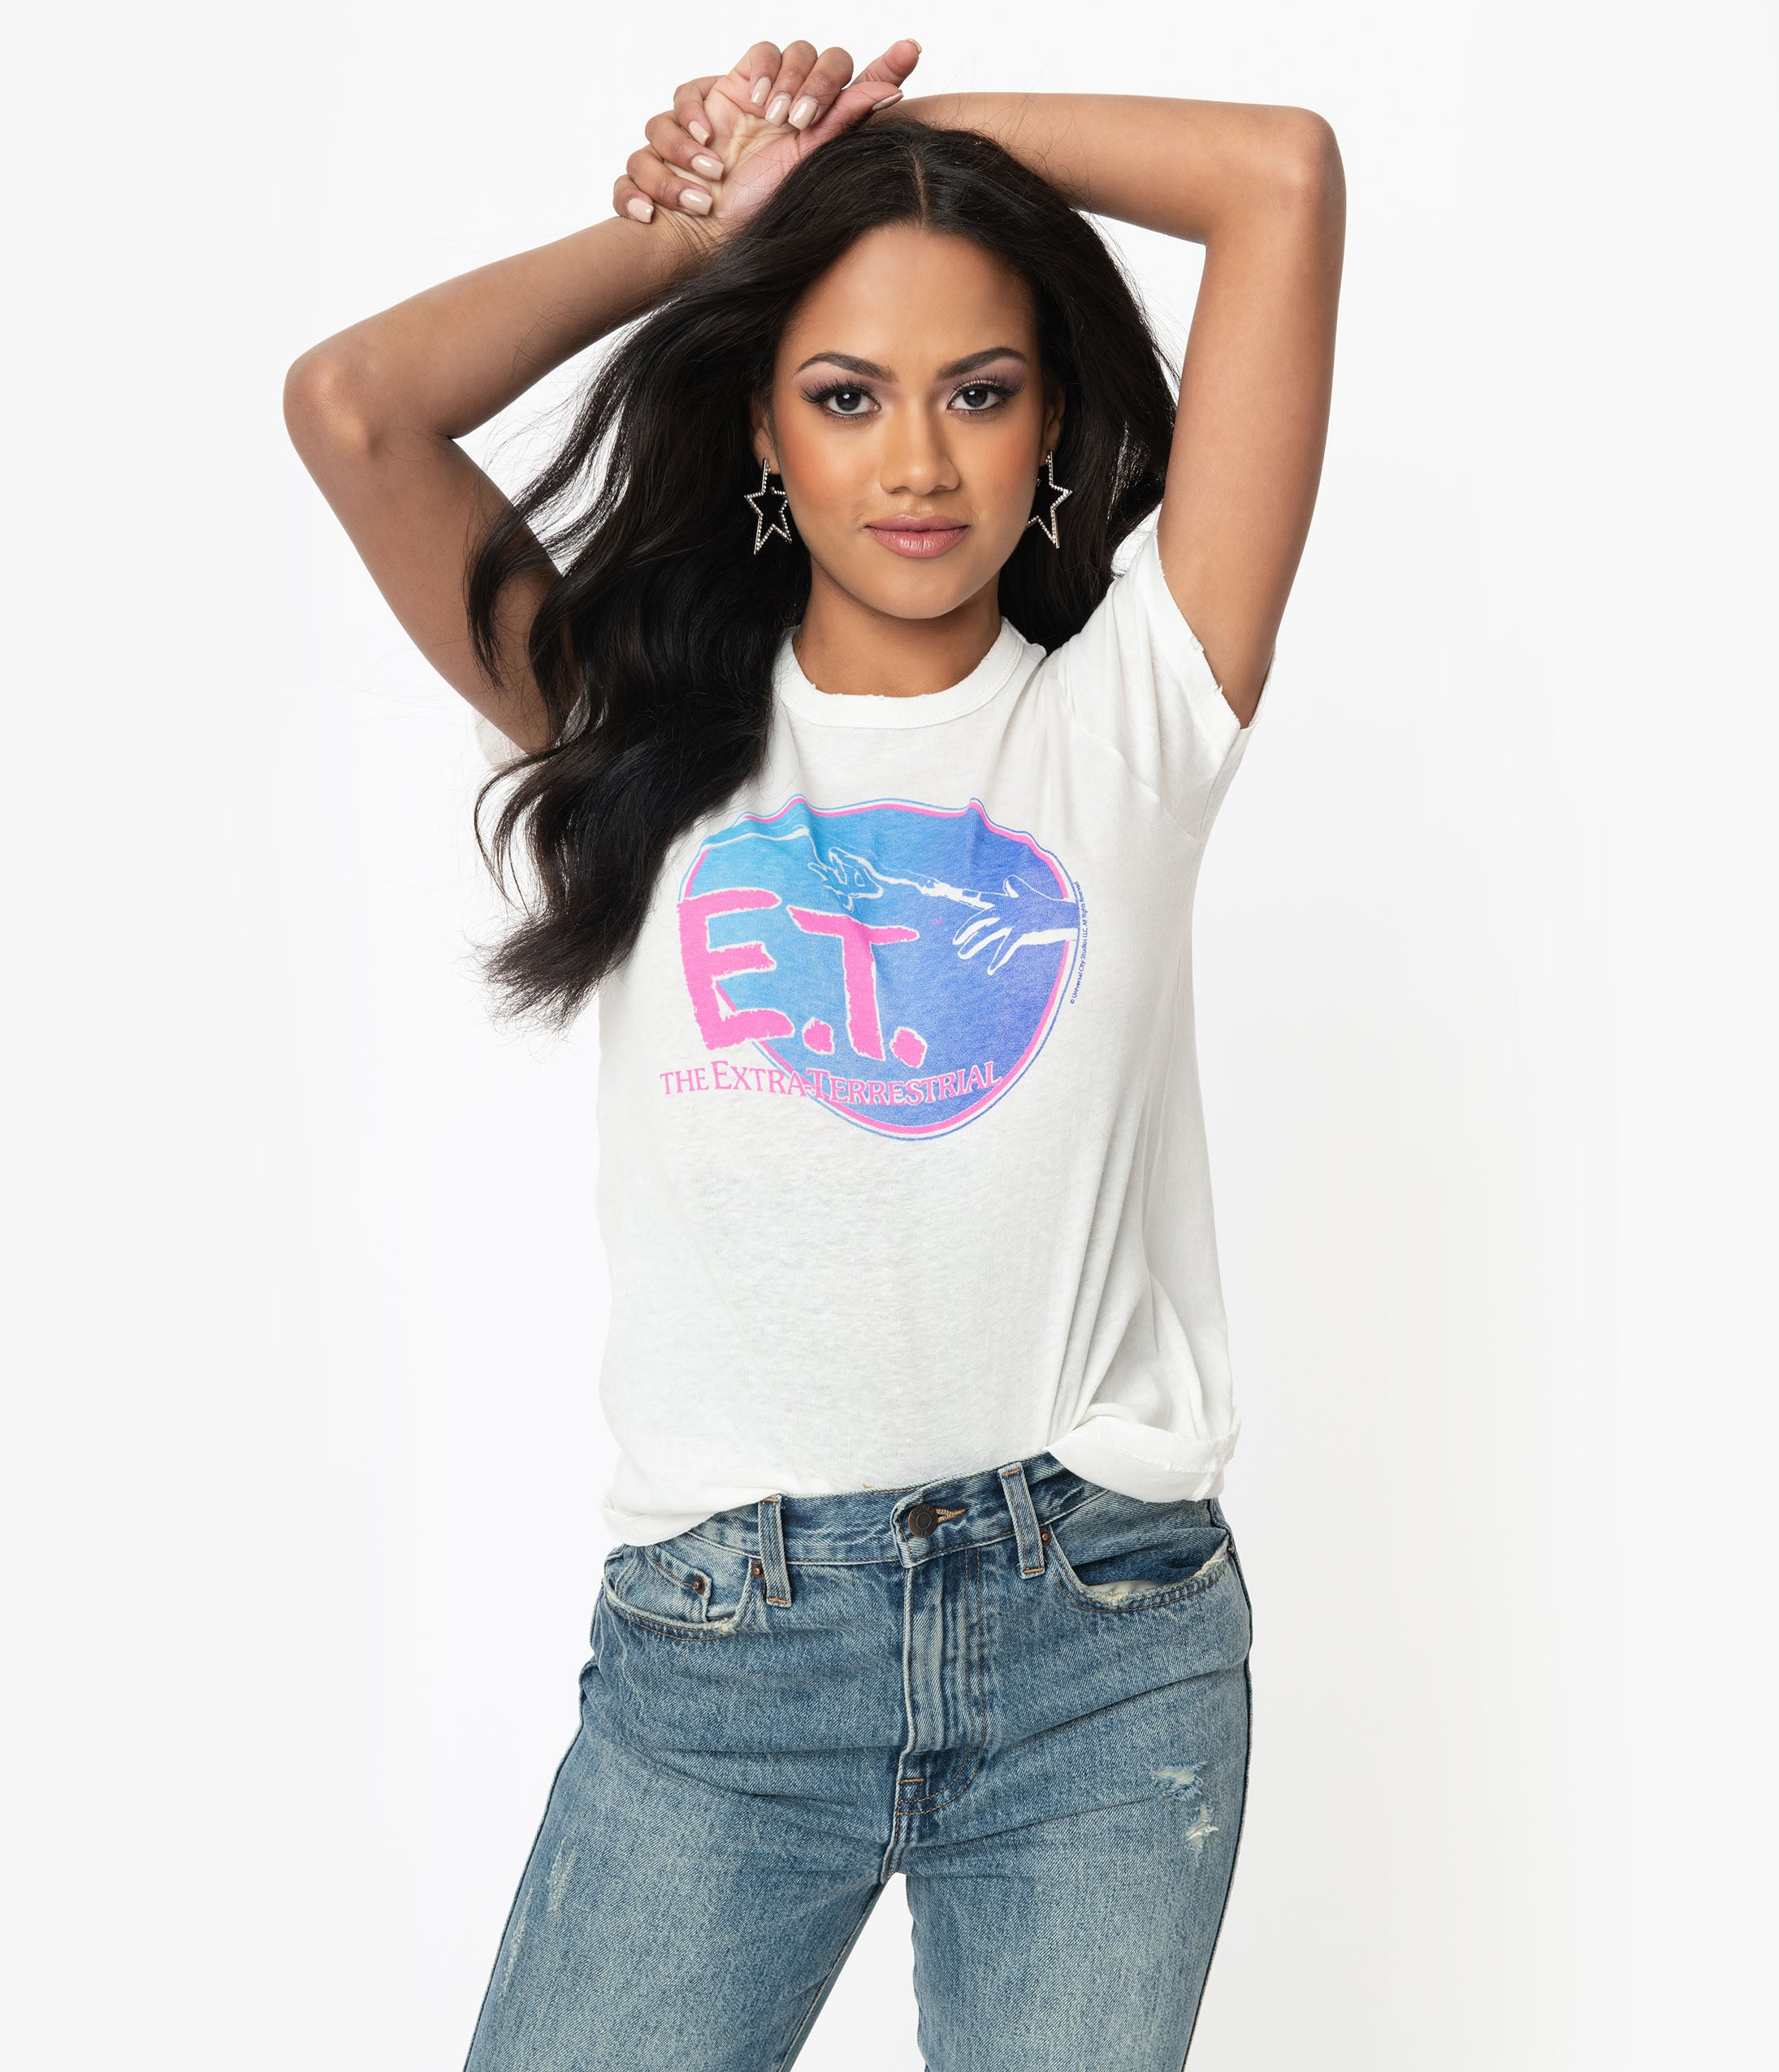 1980s Clothing, Fashion   80s Style Clothes Junk Food E.t. The Extra-Terrestrial Original Logo Tee $48.00 AT vintagedancer.com